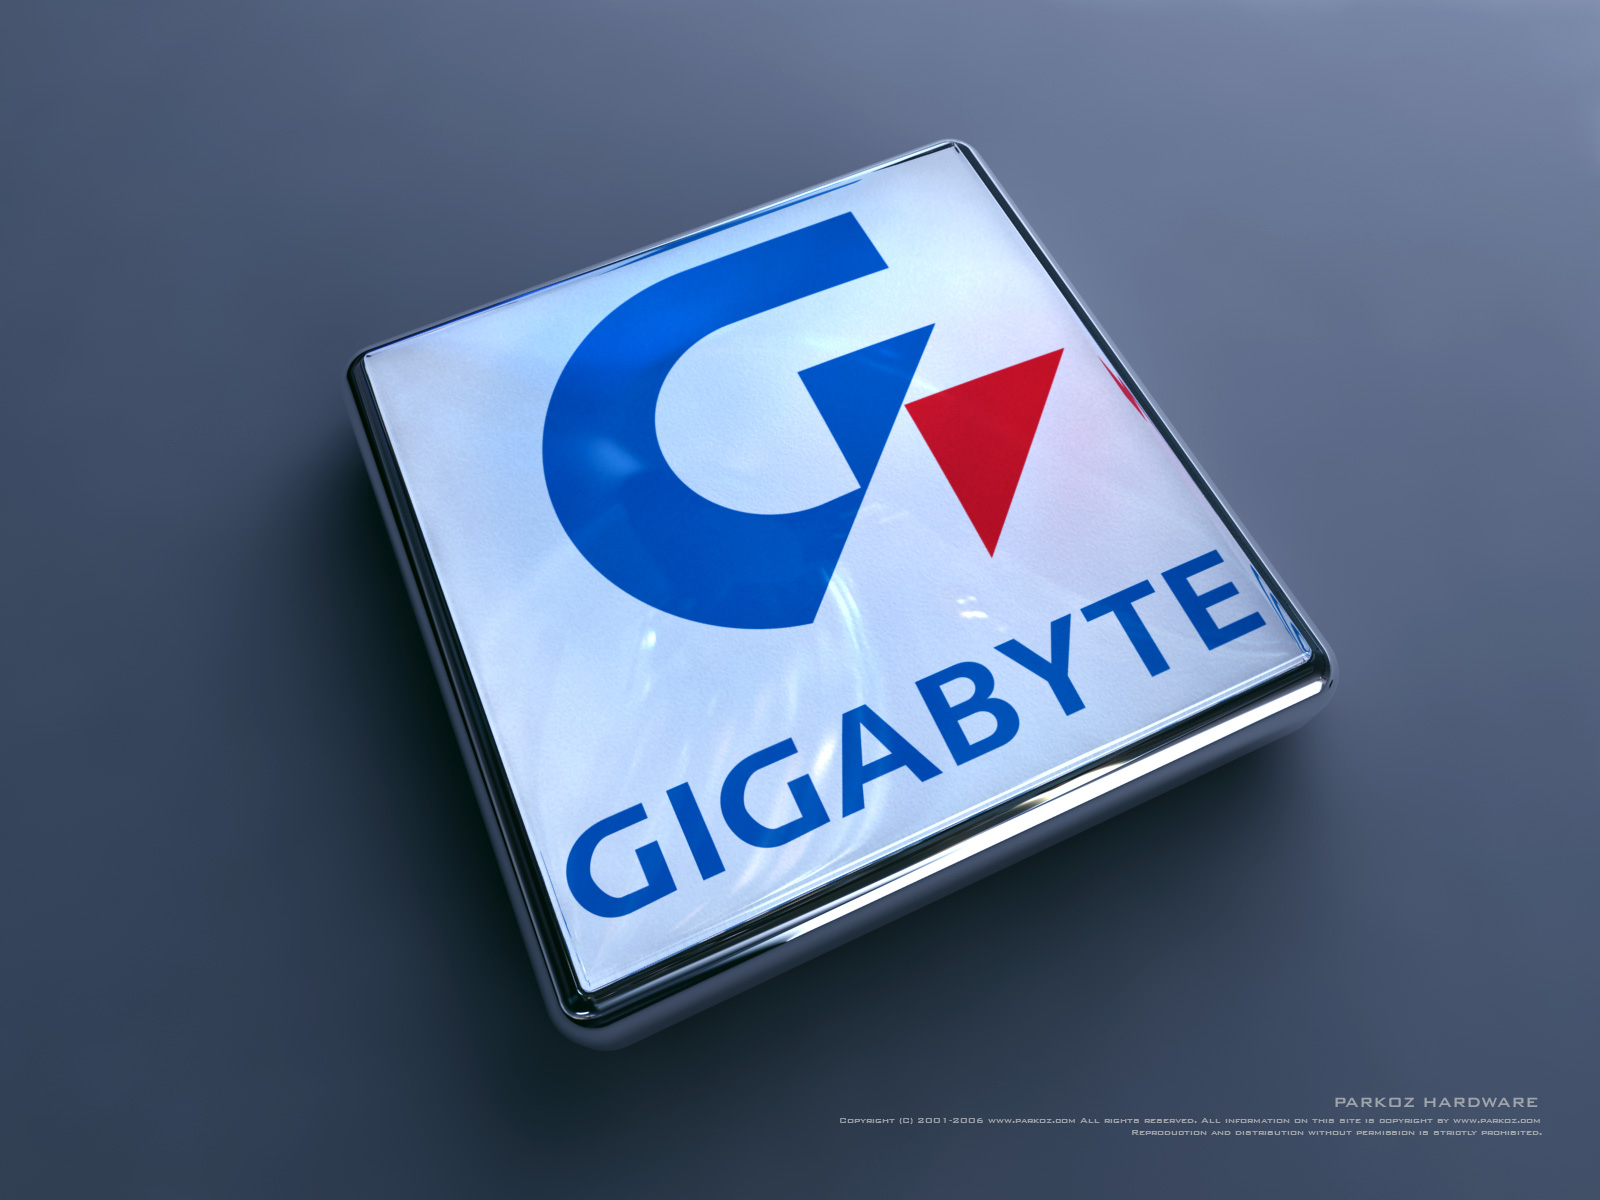 Nice Images Collection: Gigabyte Desktop Wallpapers